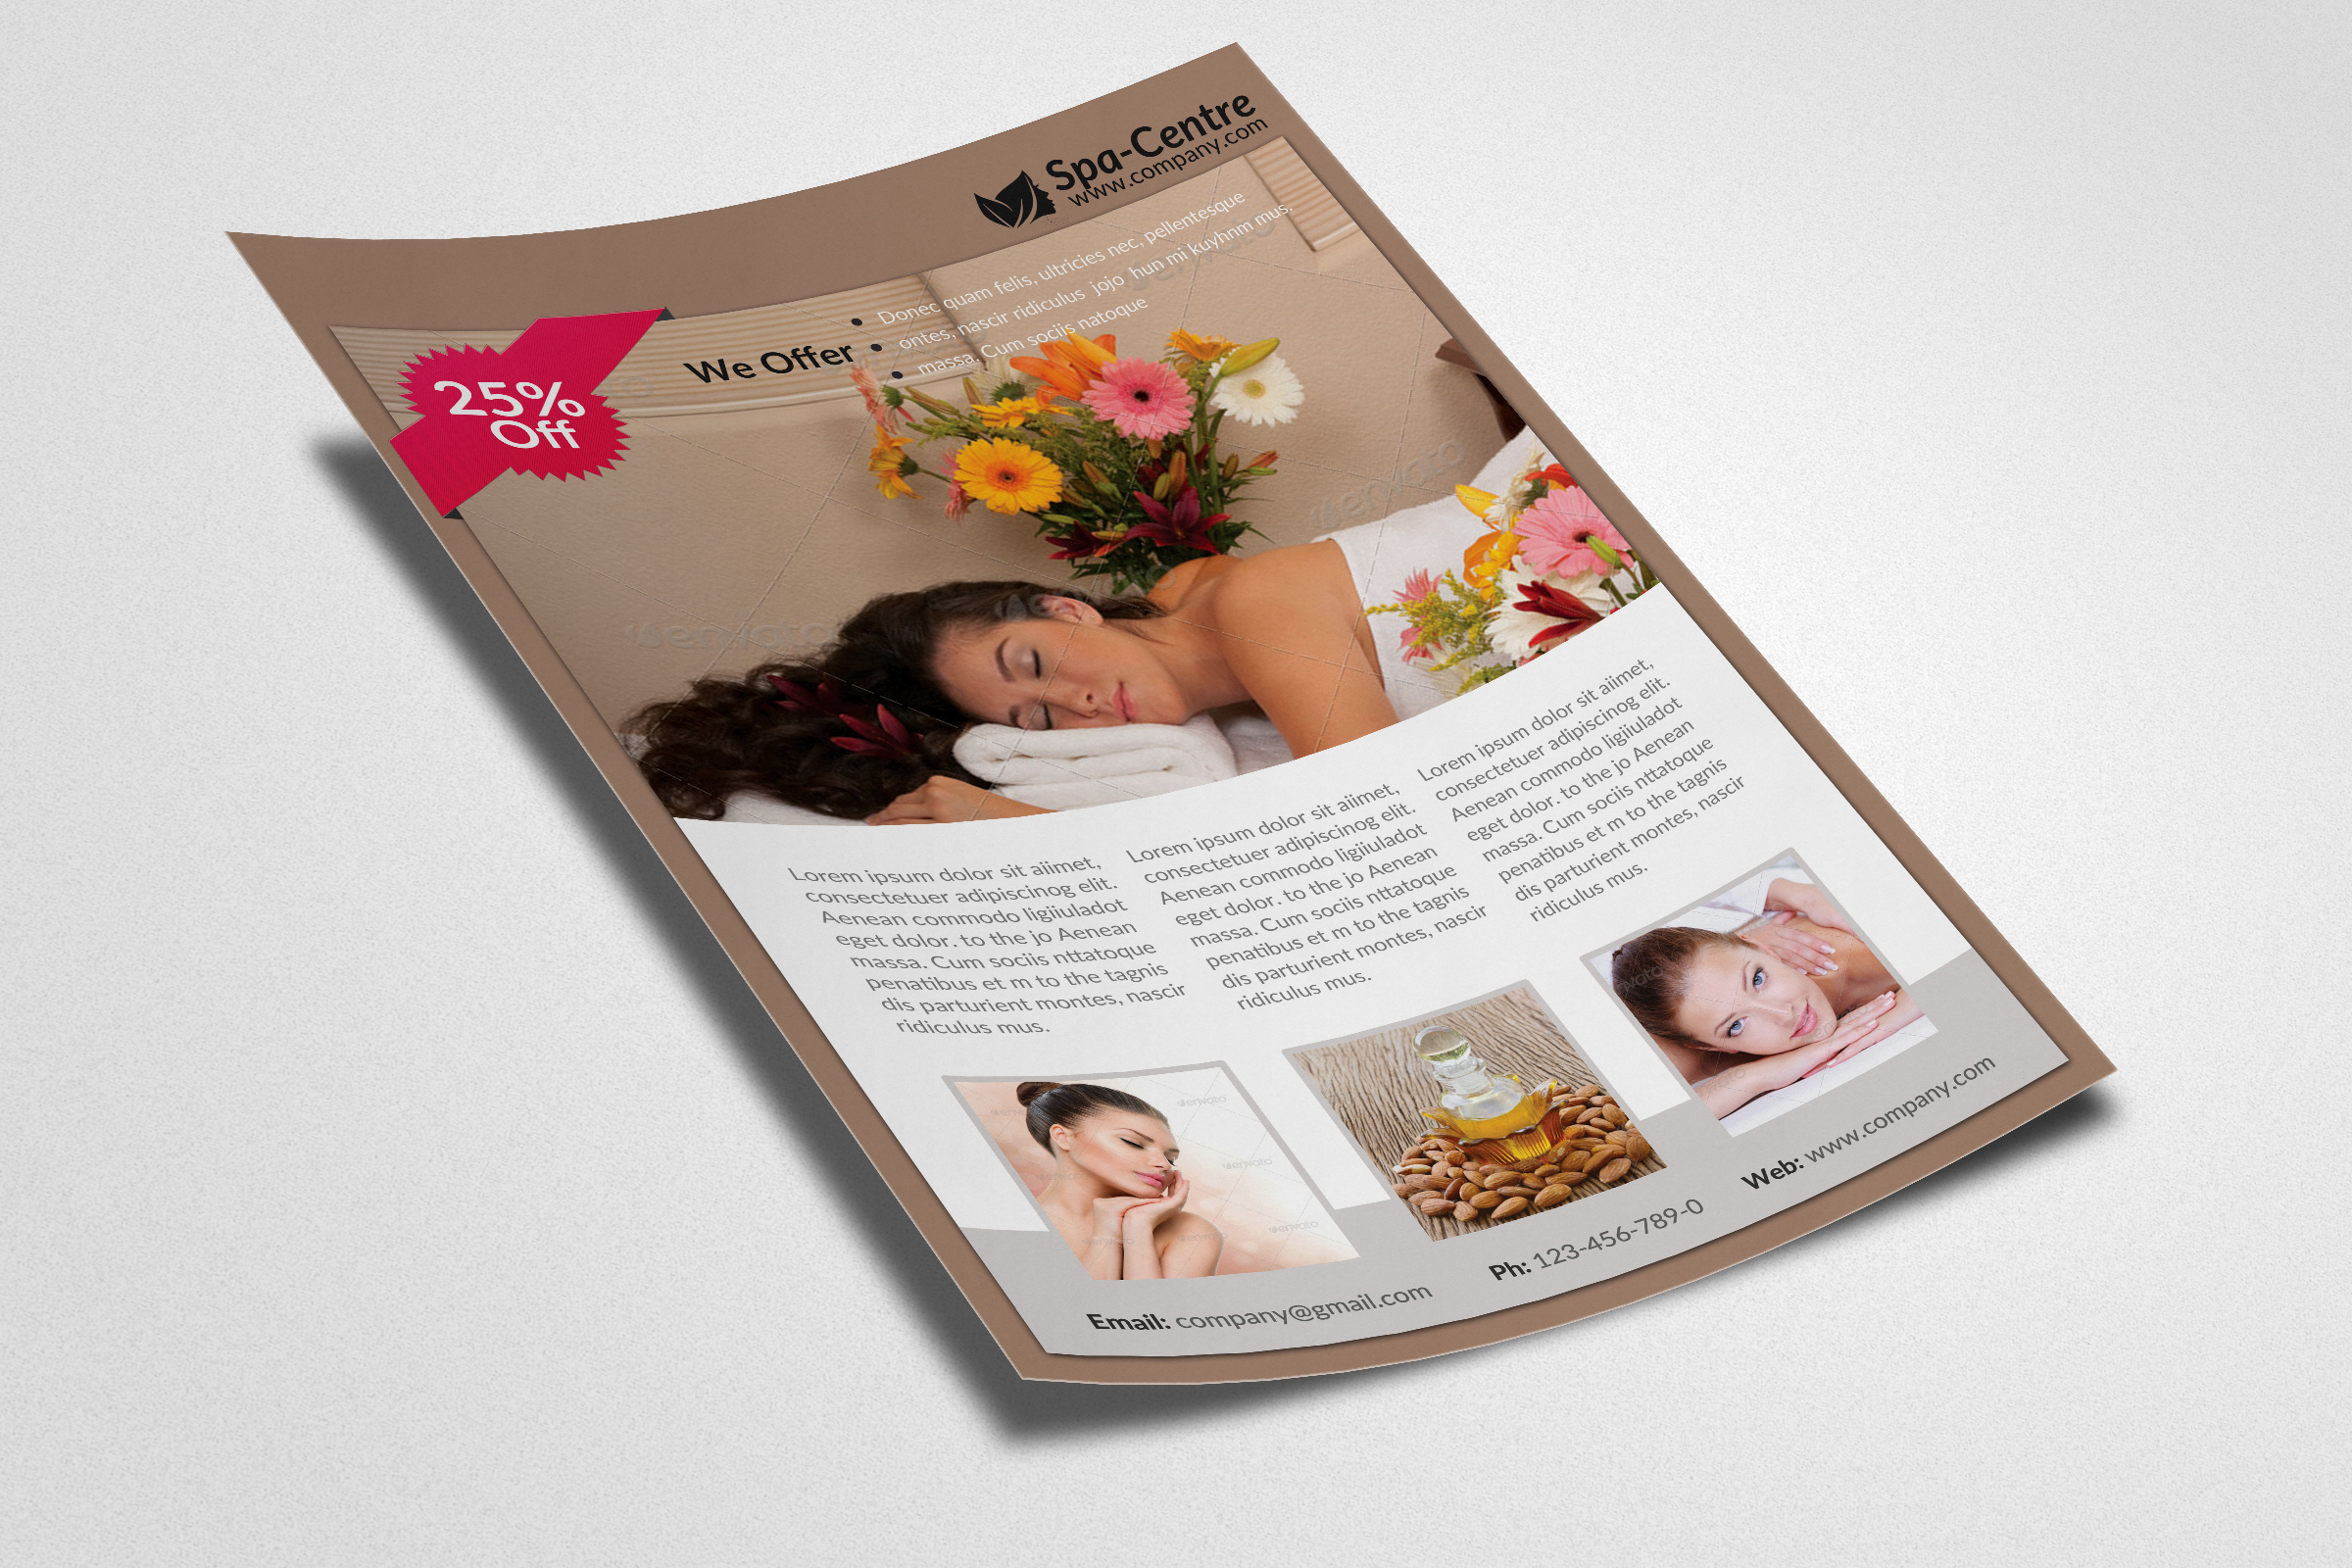 Beauty Spa & Massage Flyer example image 3